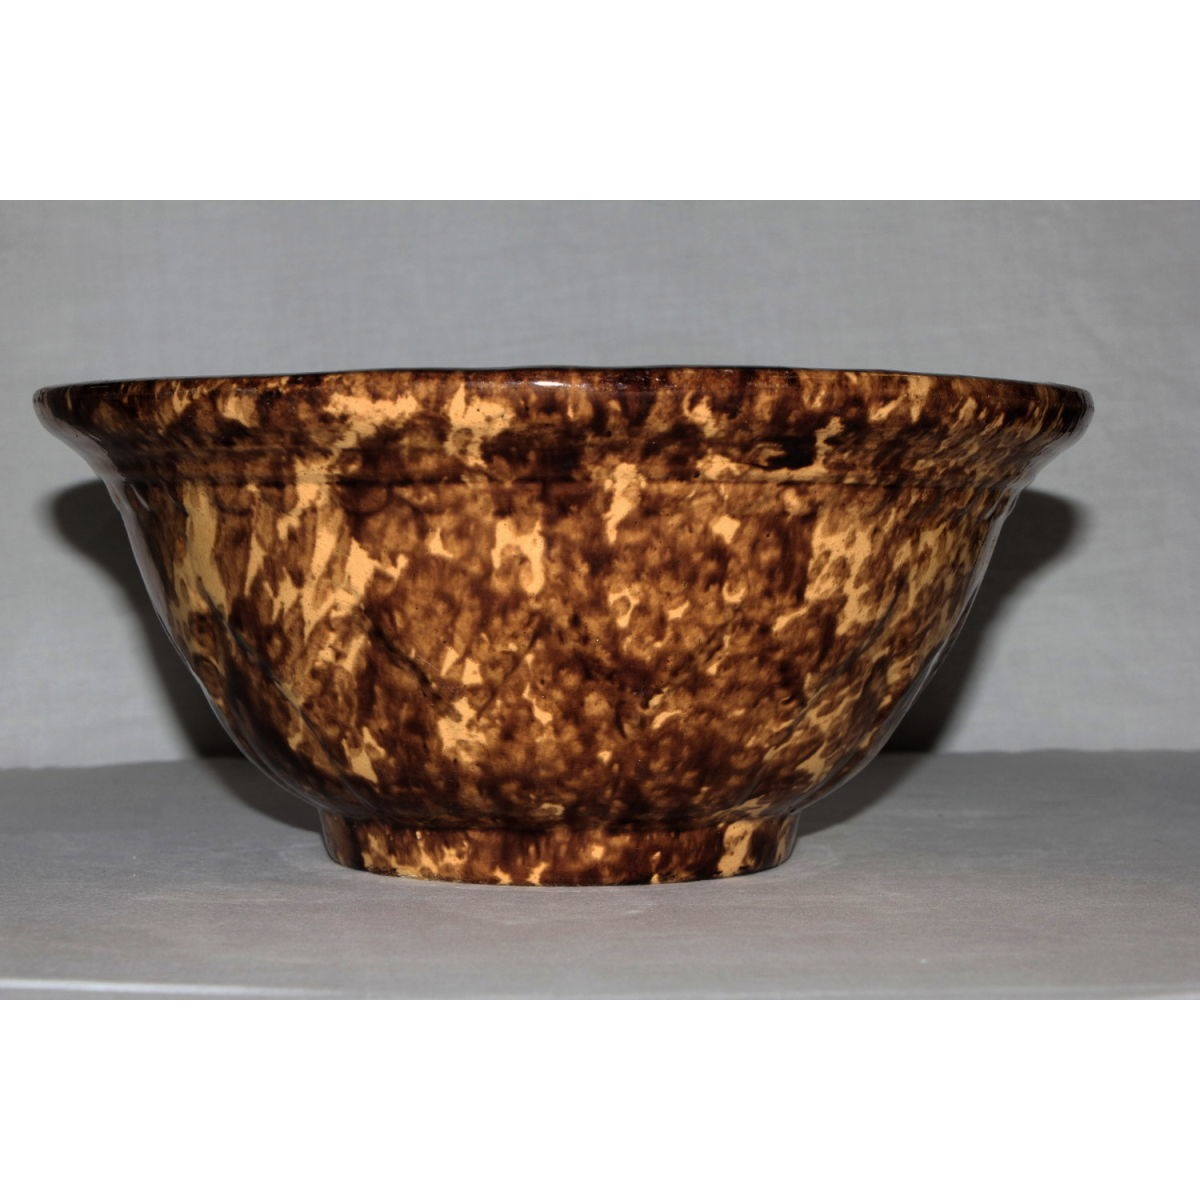 "Very Nice 10.5"" Rockingham Embossed Bowl"